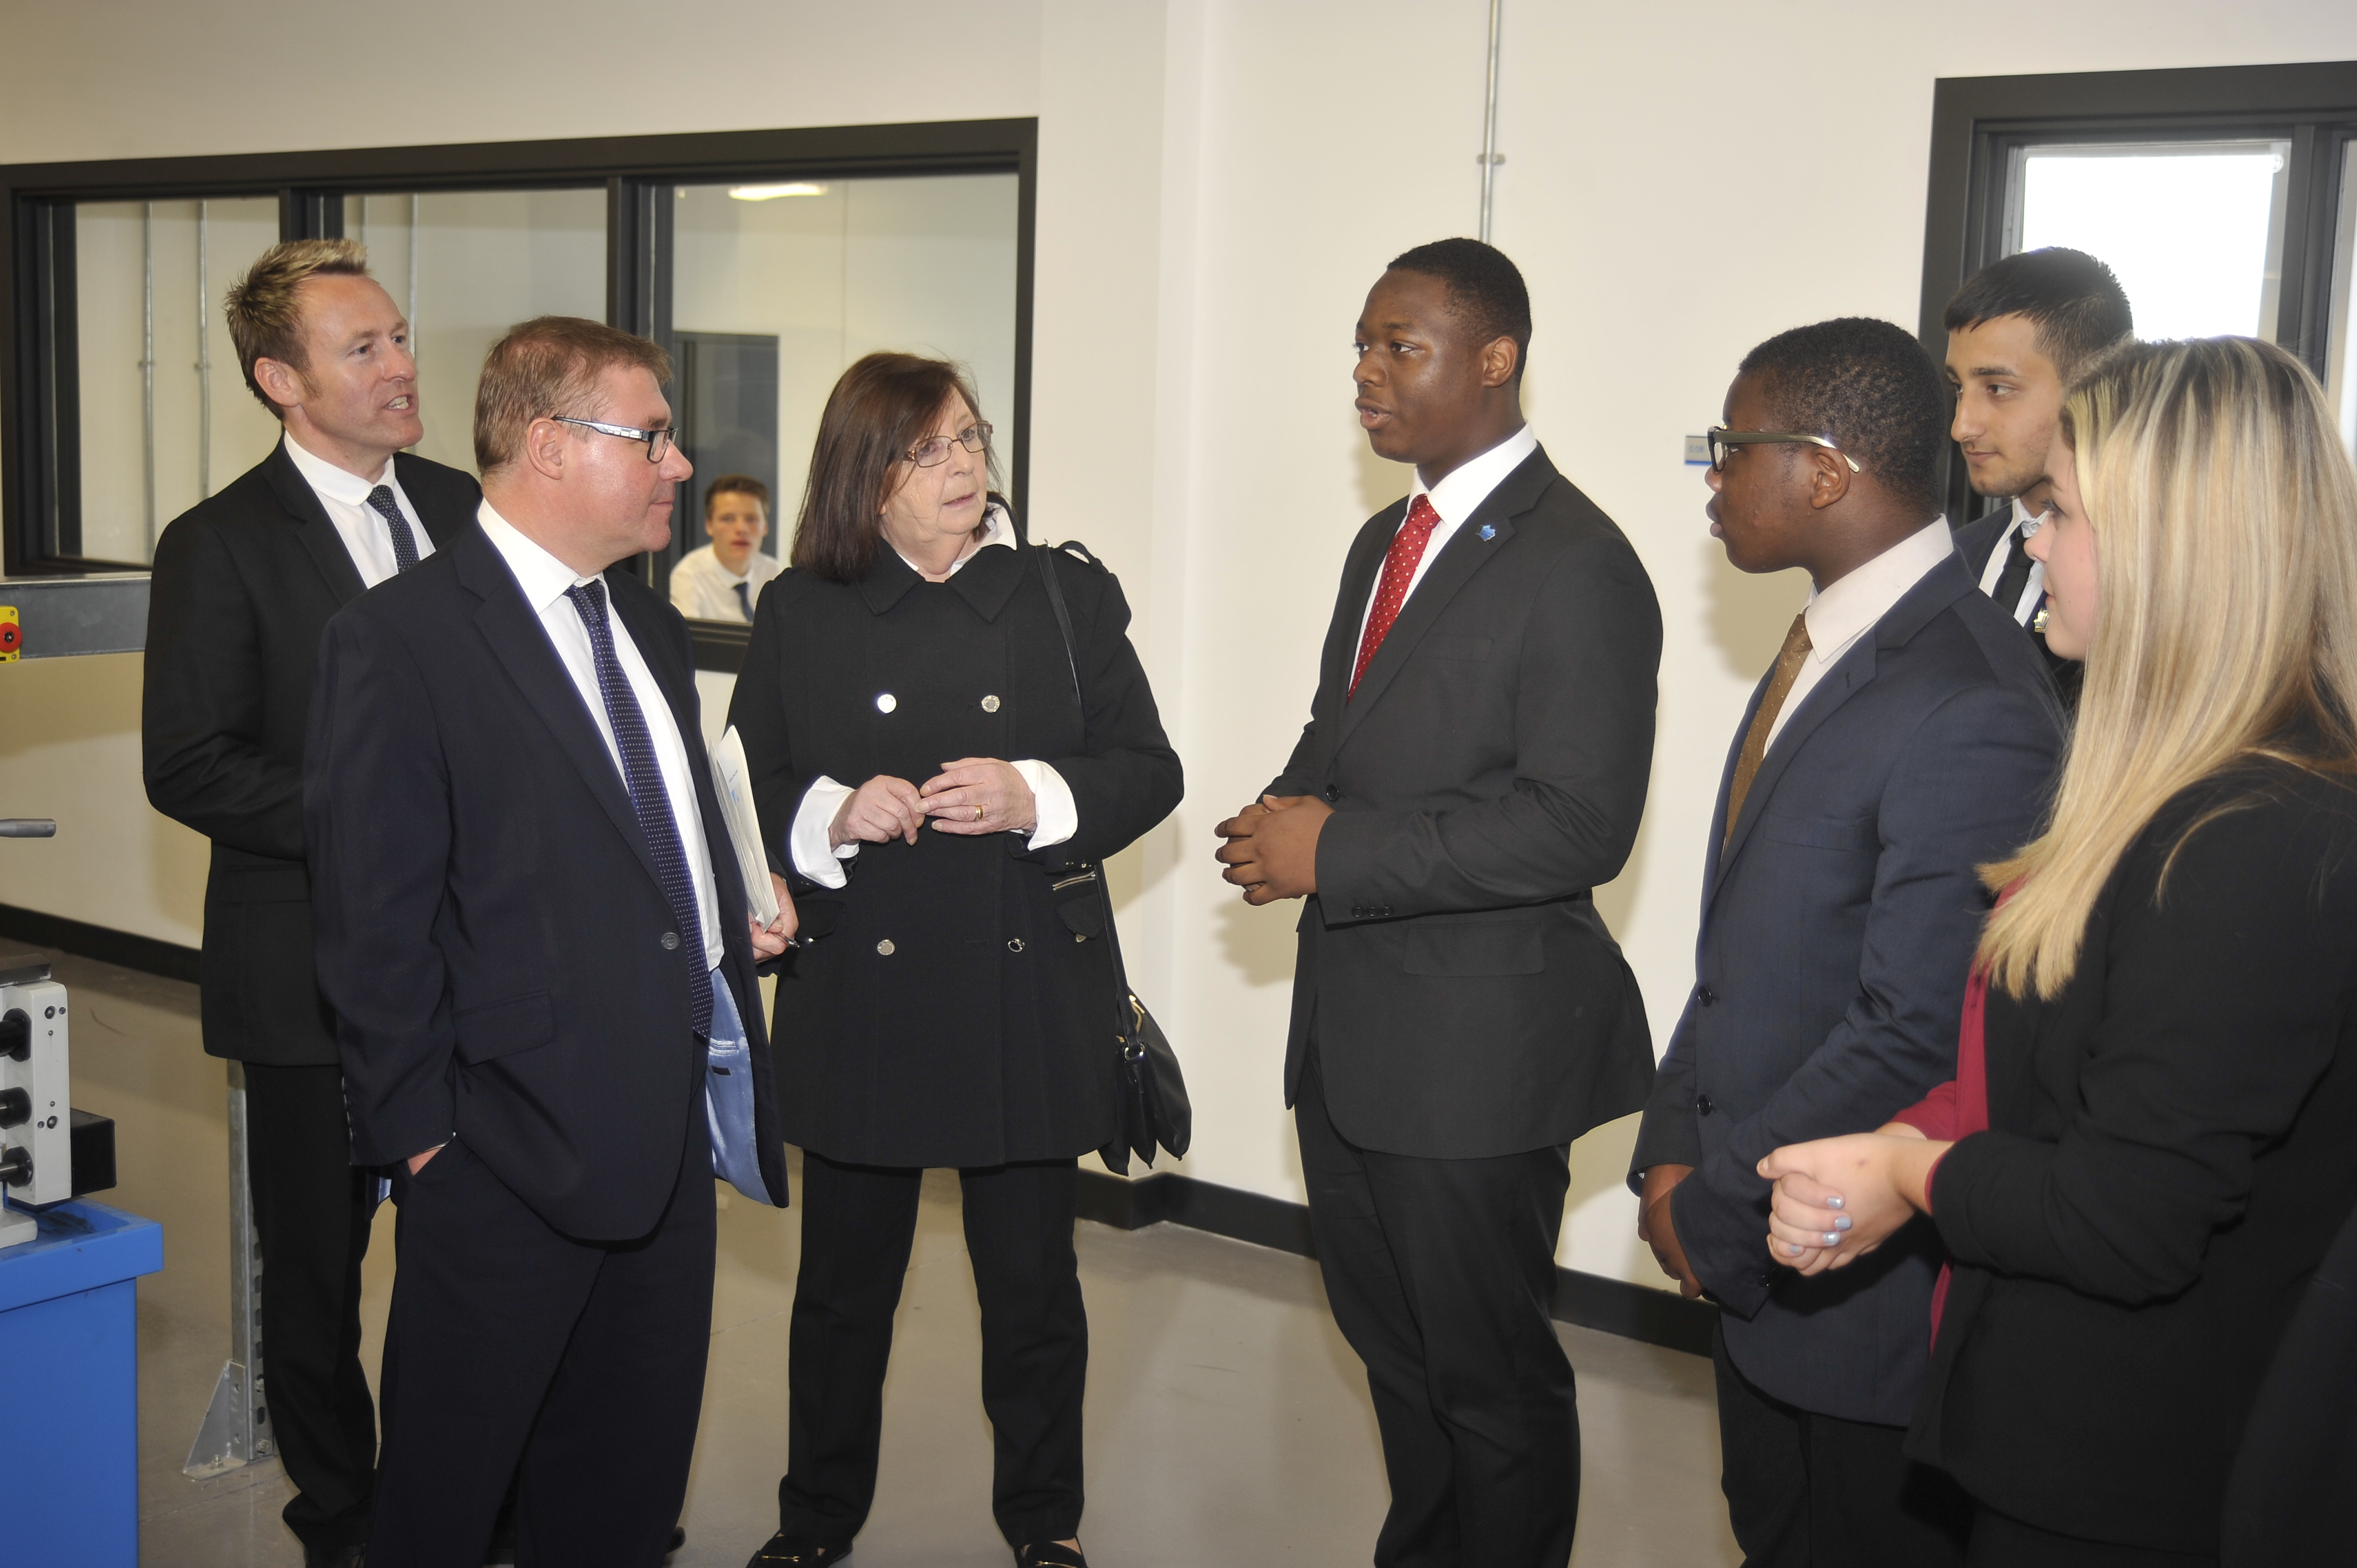 Thames Gateway Minister Rt Hon Mark Francois MP (second from left) meets students at Medway UTC during his visit to North Kent